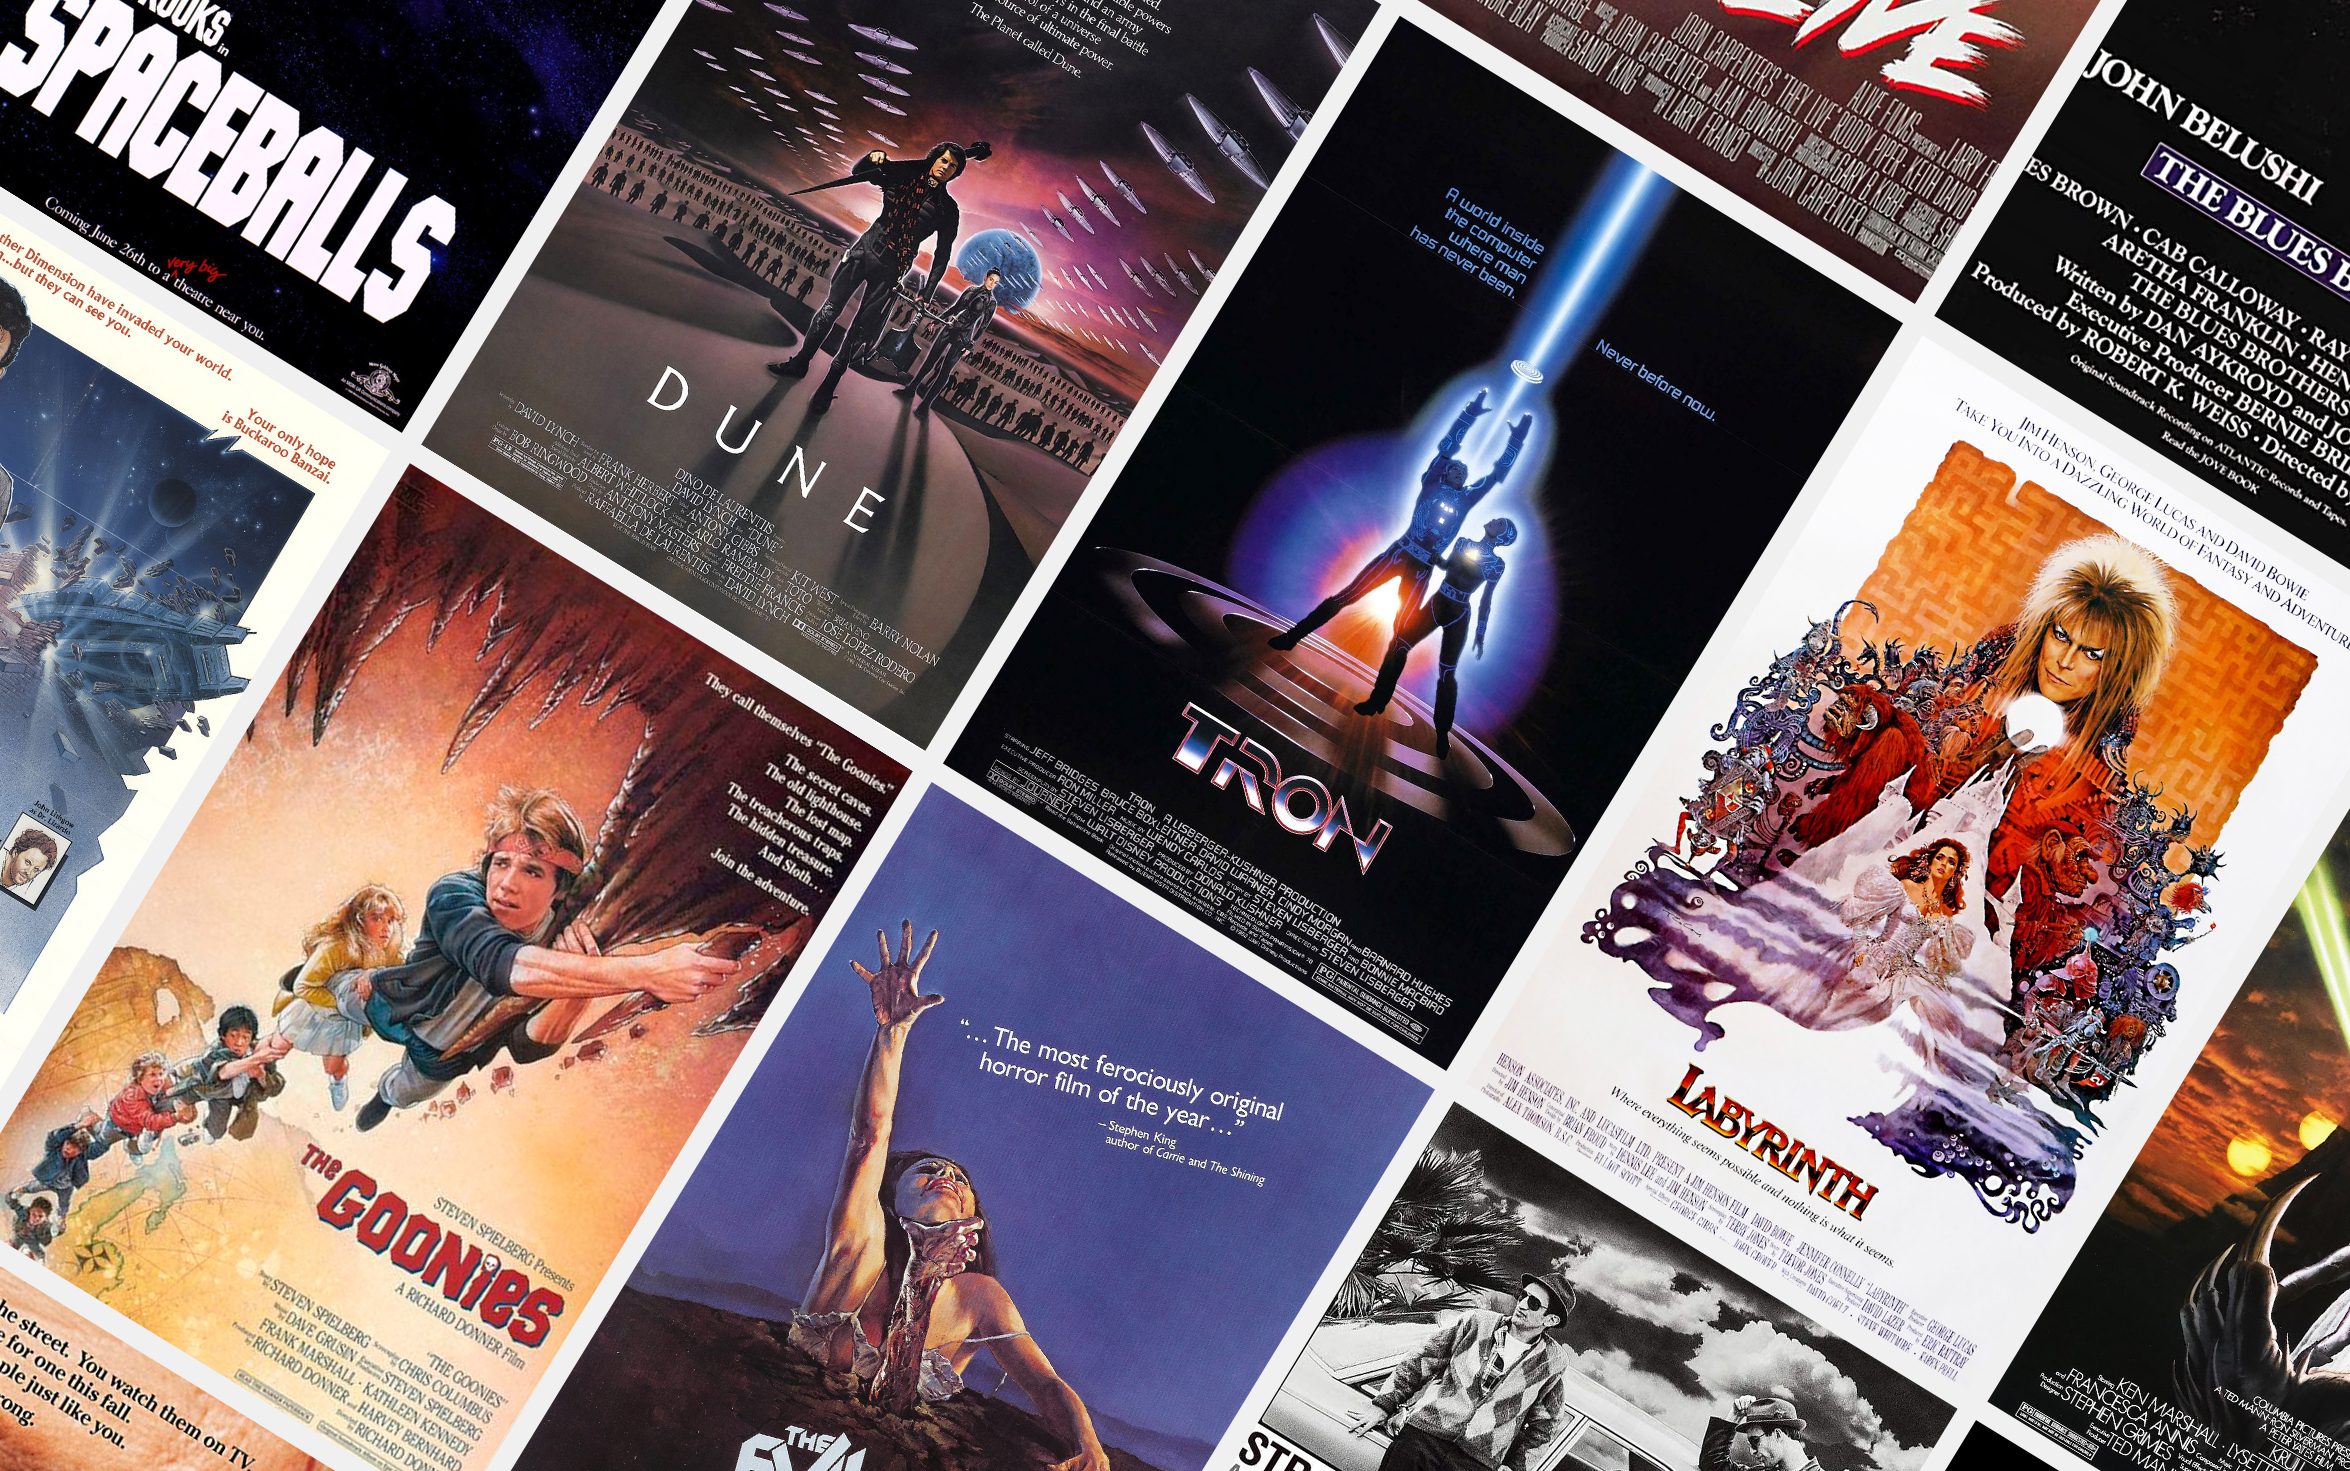 80s cult movies